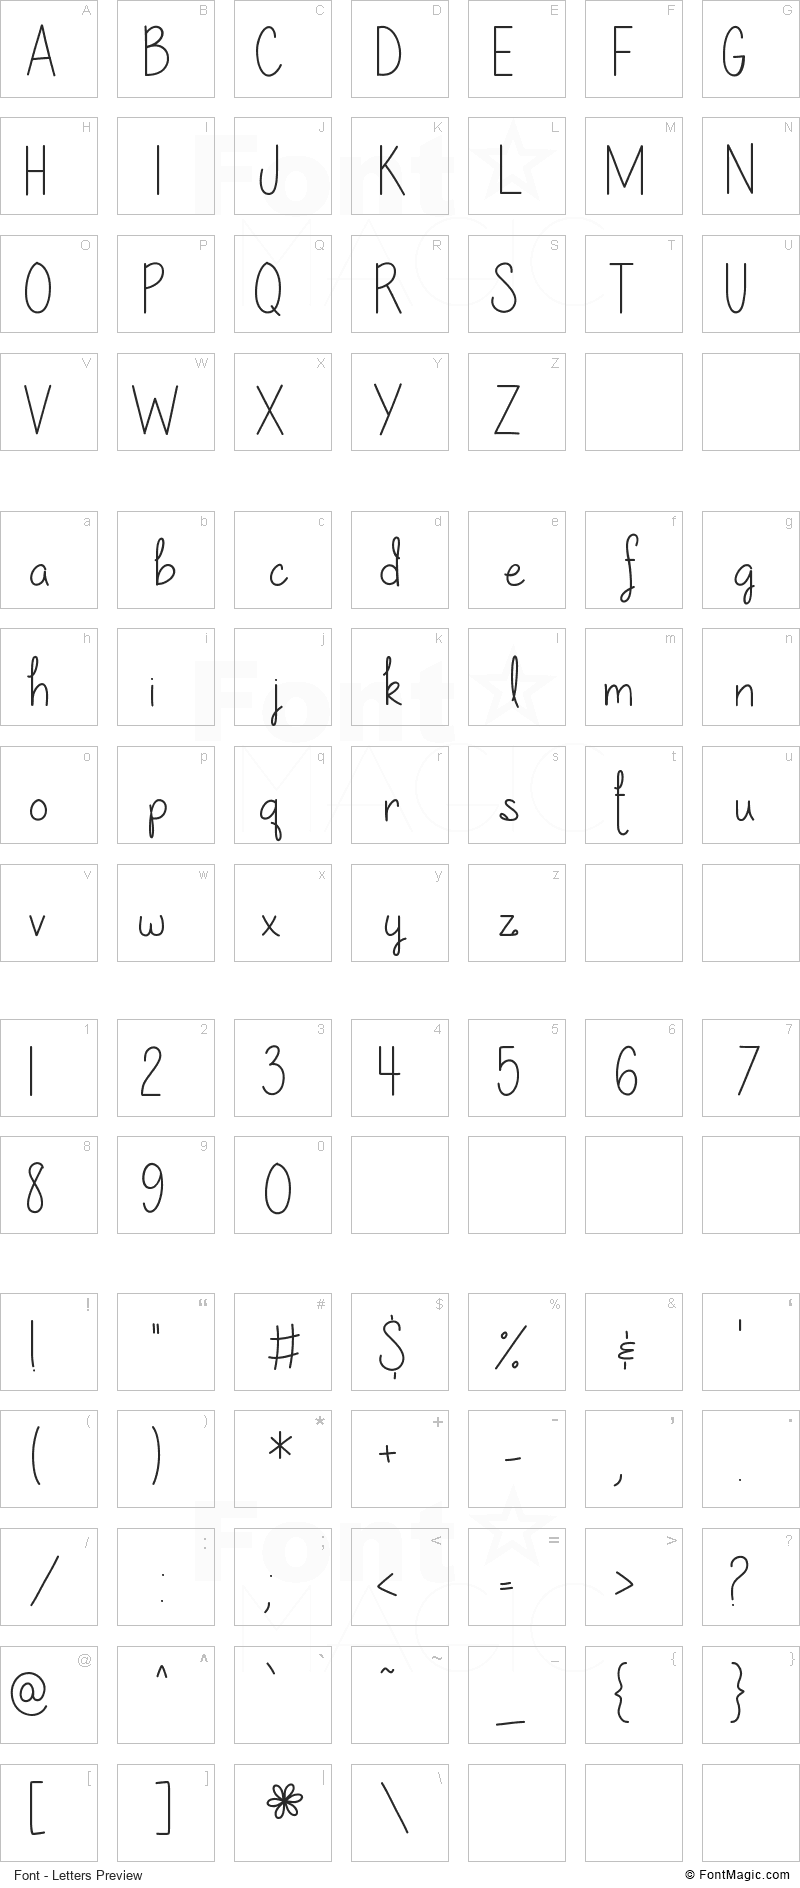 Our lil secret forever Font - All Latters Preview Chart